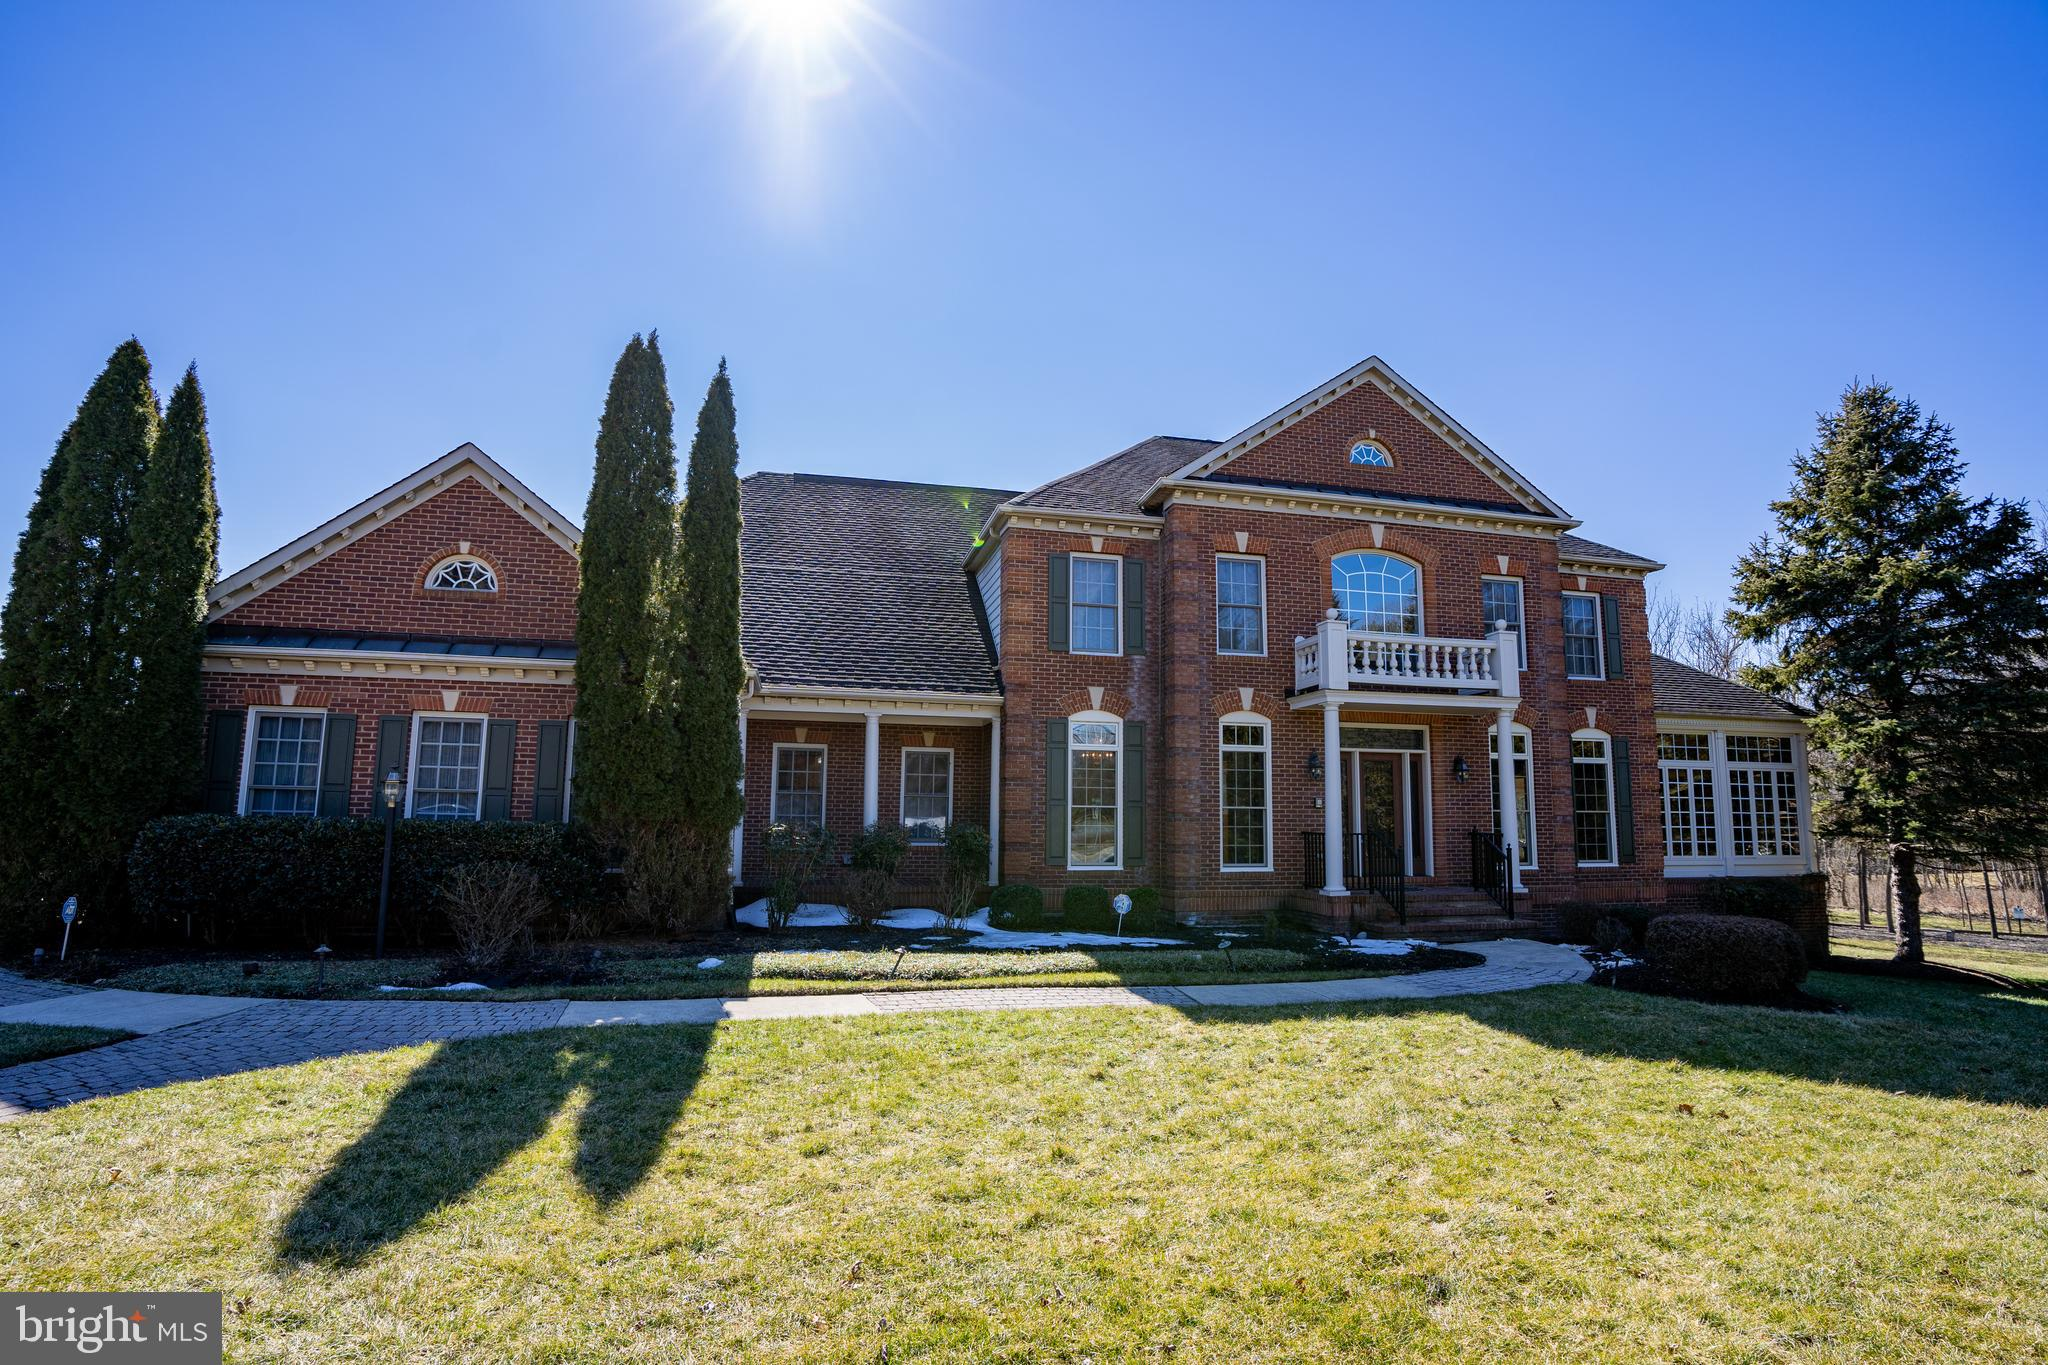 Rare opportunity in today's market. This magnificent formal model home has four bedrooms with five f